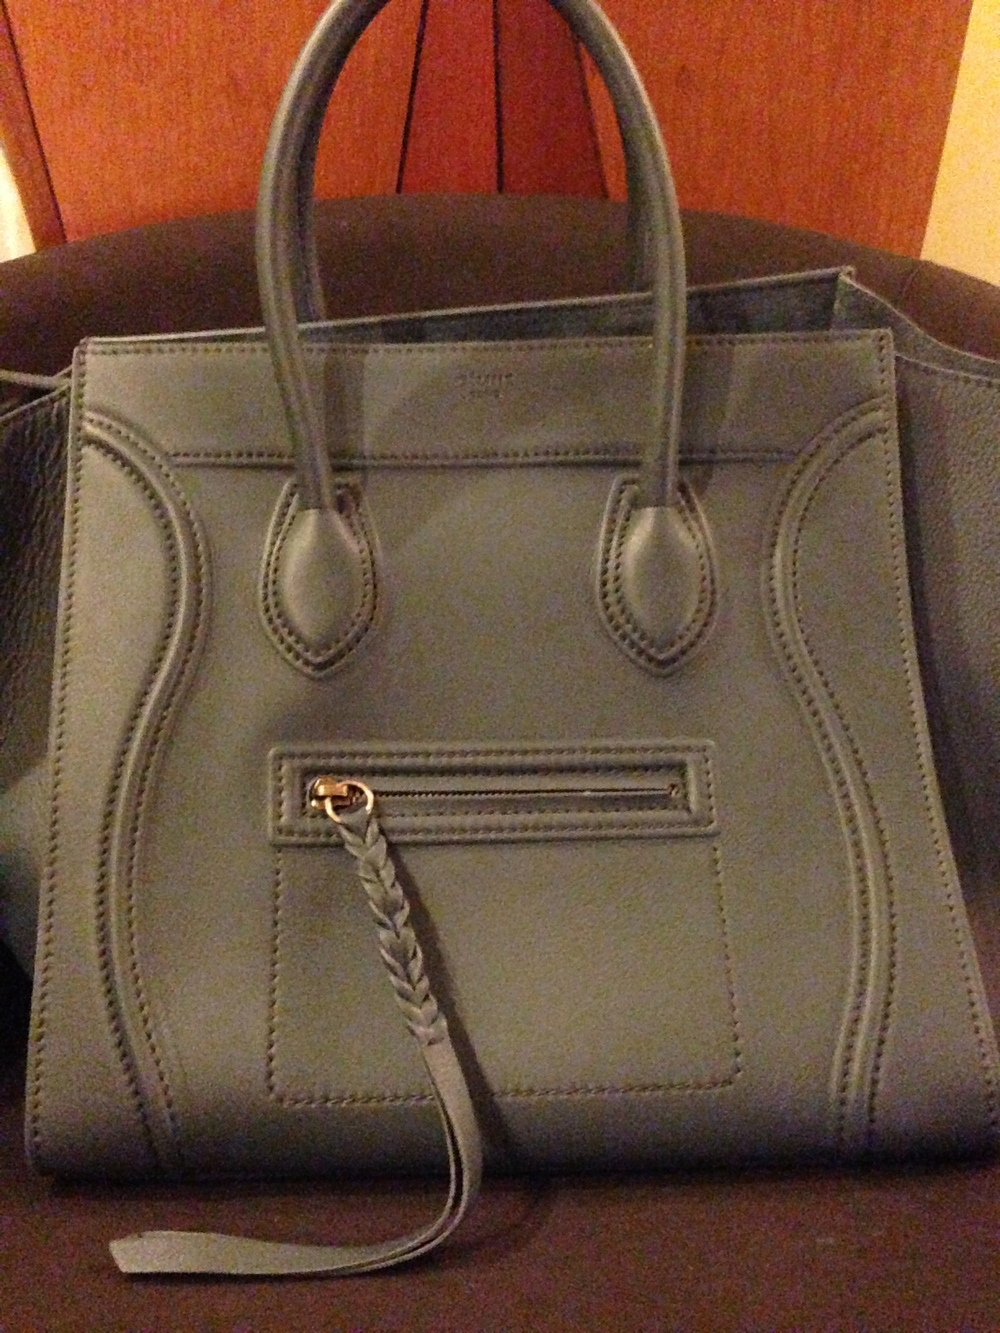 Celine Phantom in Slate Blue